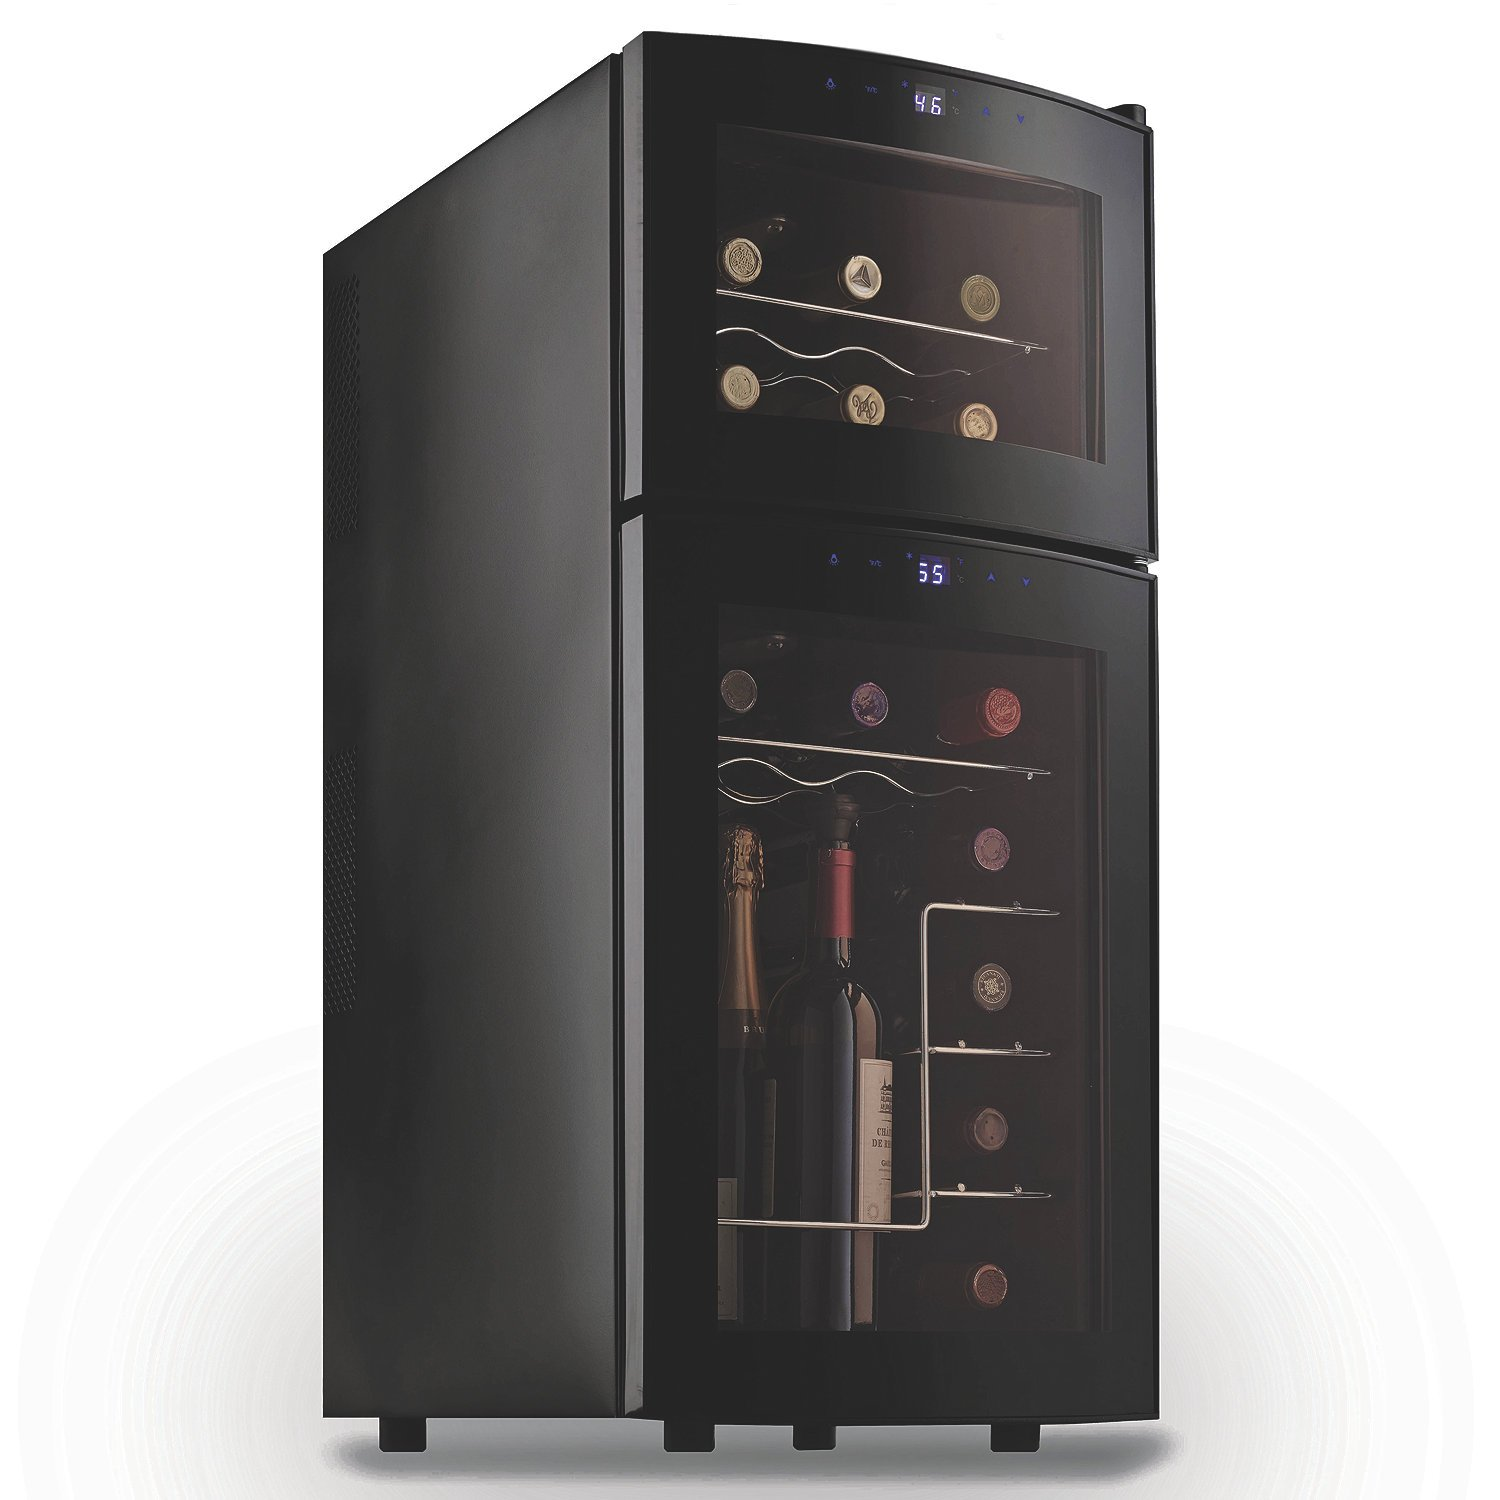 Wine Enthusiast 272031910 Silent 21 Bottle Dual Zone Wine Refrigerator with Curved Doors, Small, Black by Wine Enthusiast